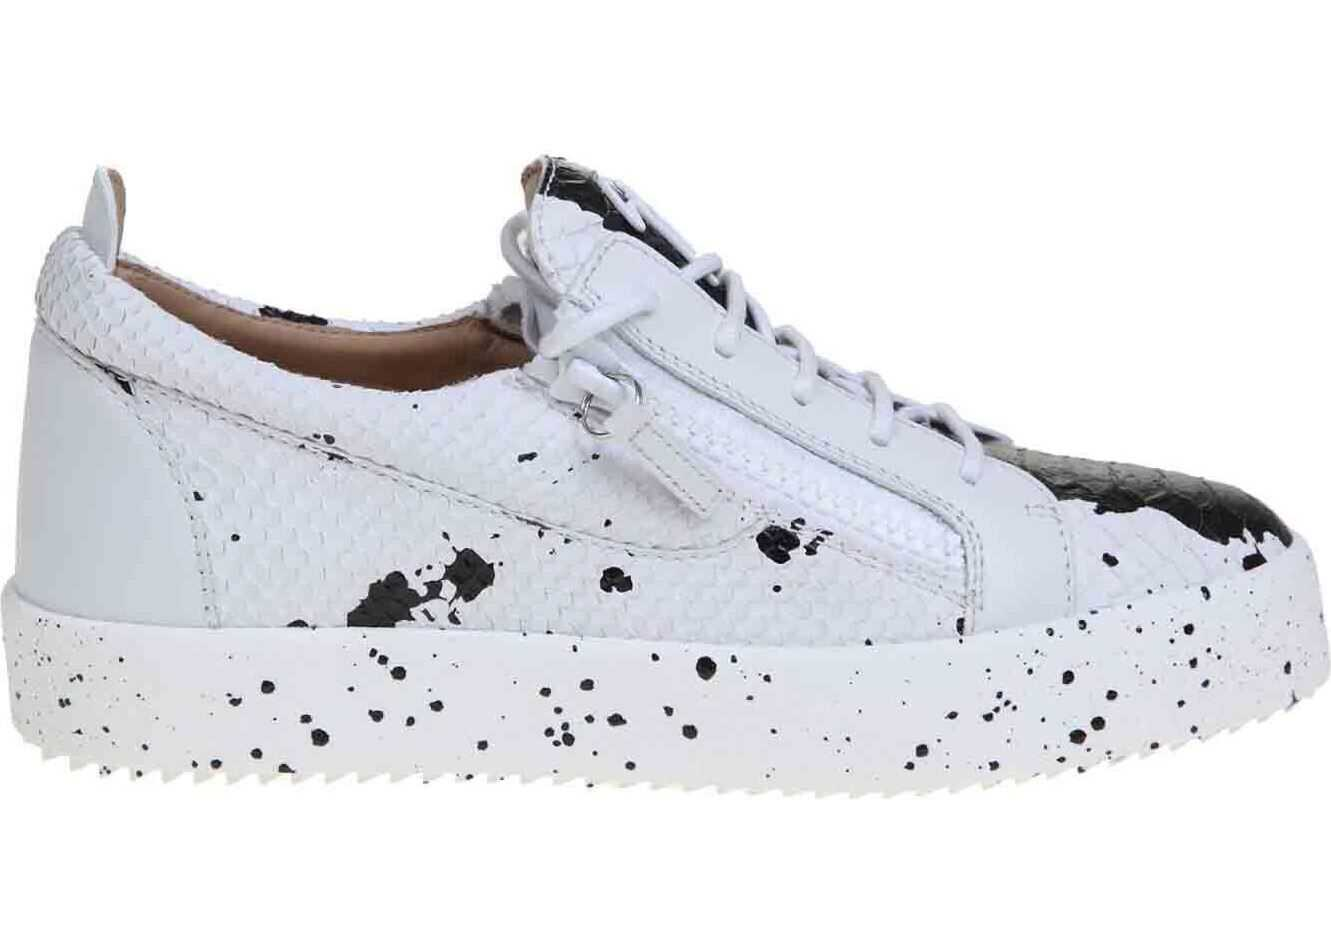 May Sneakers In White With Black Spots thumbnail